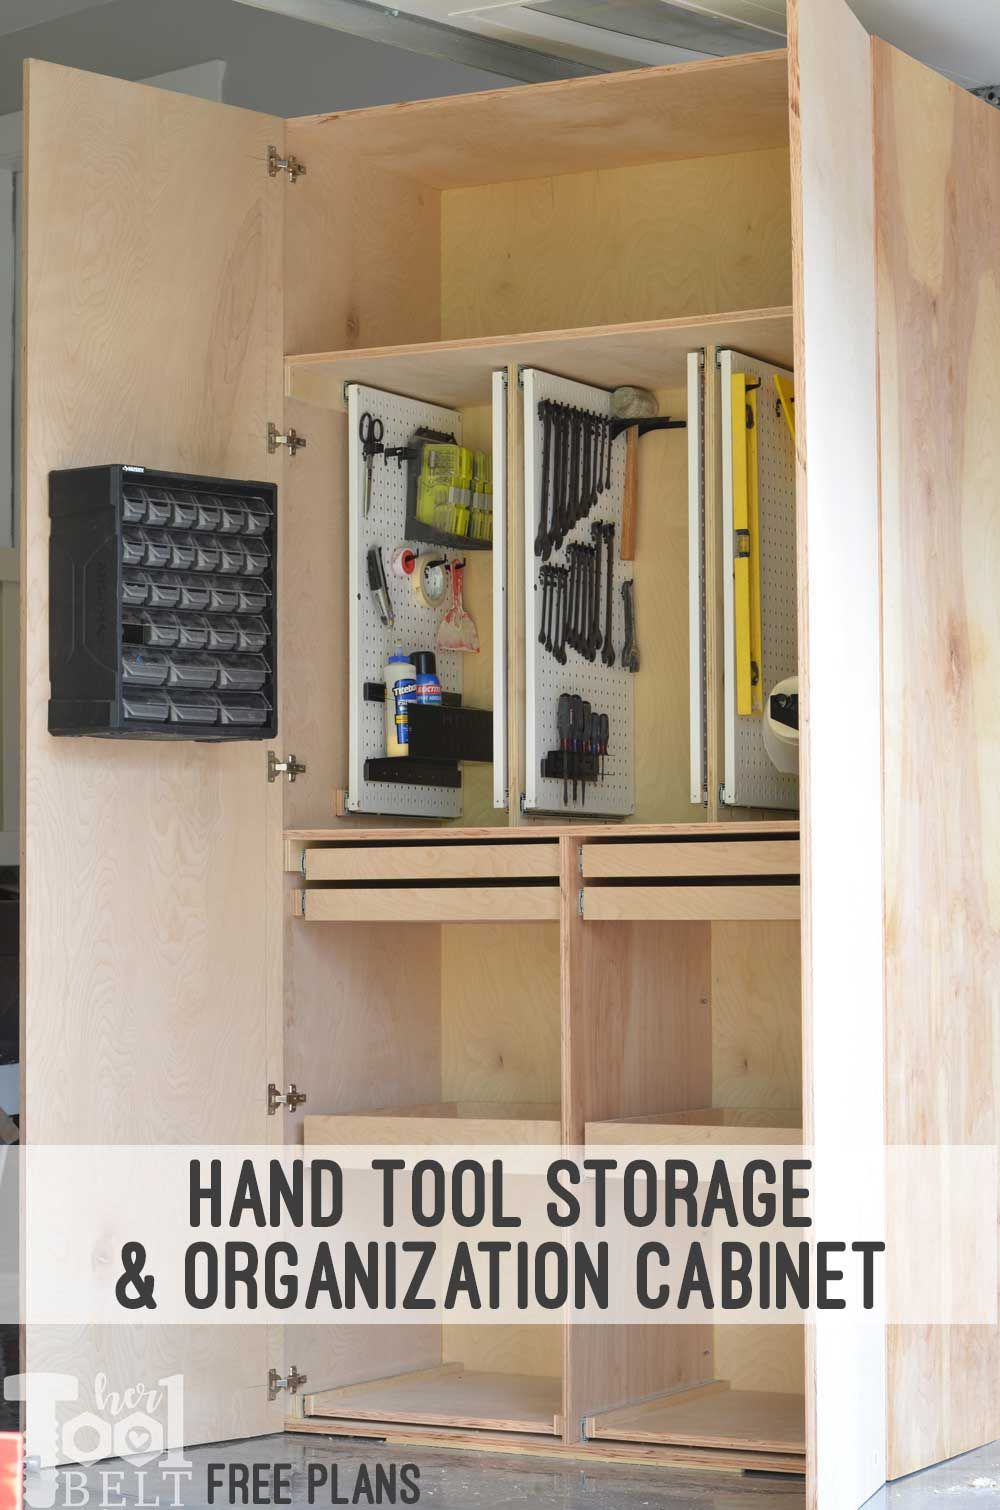 Build A Garage Cabinet With Tons Of Storage Space For Your Tools